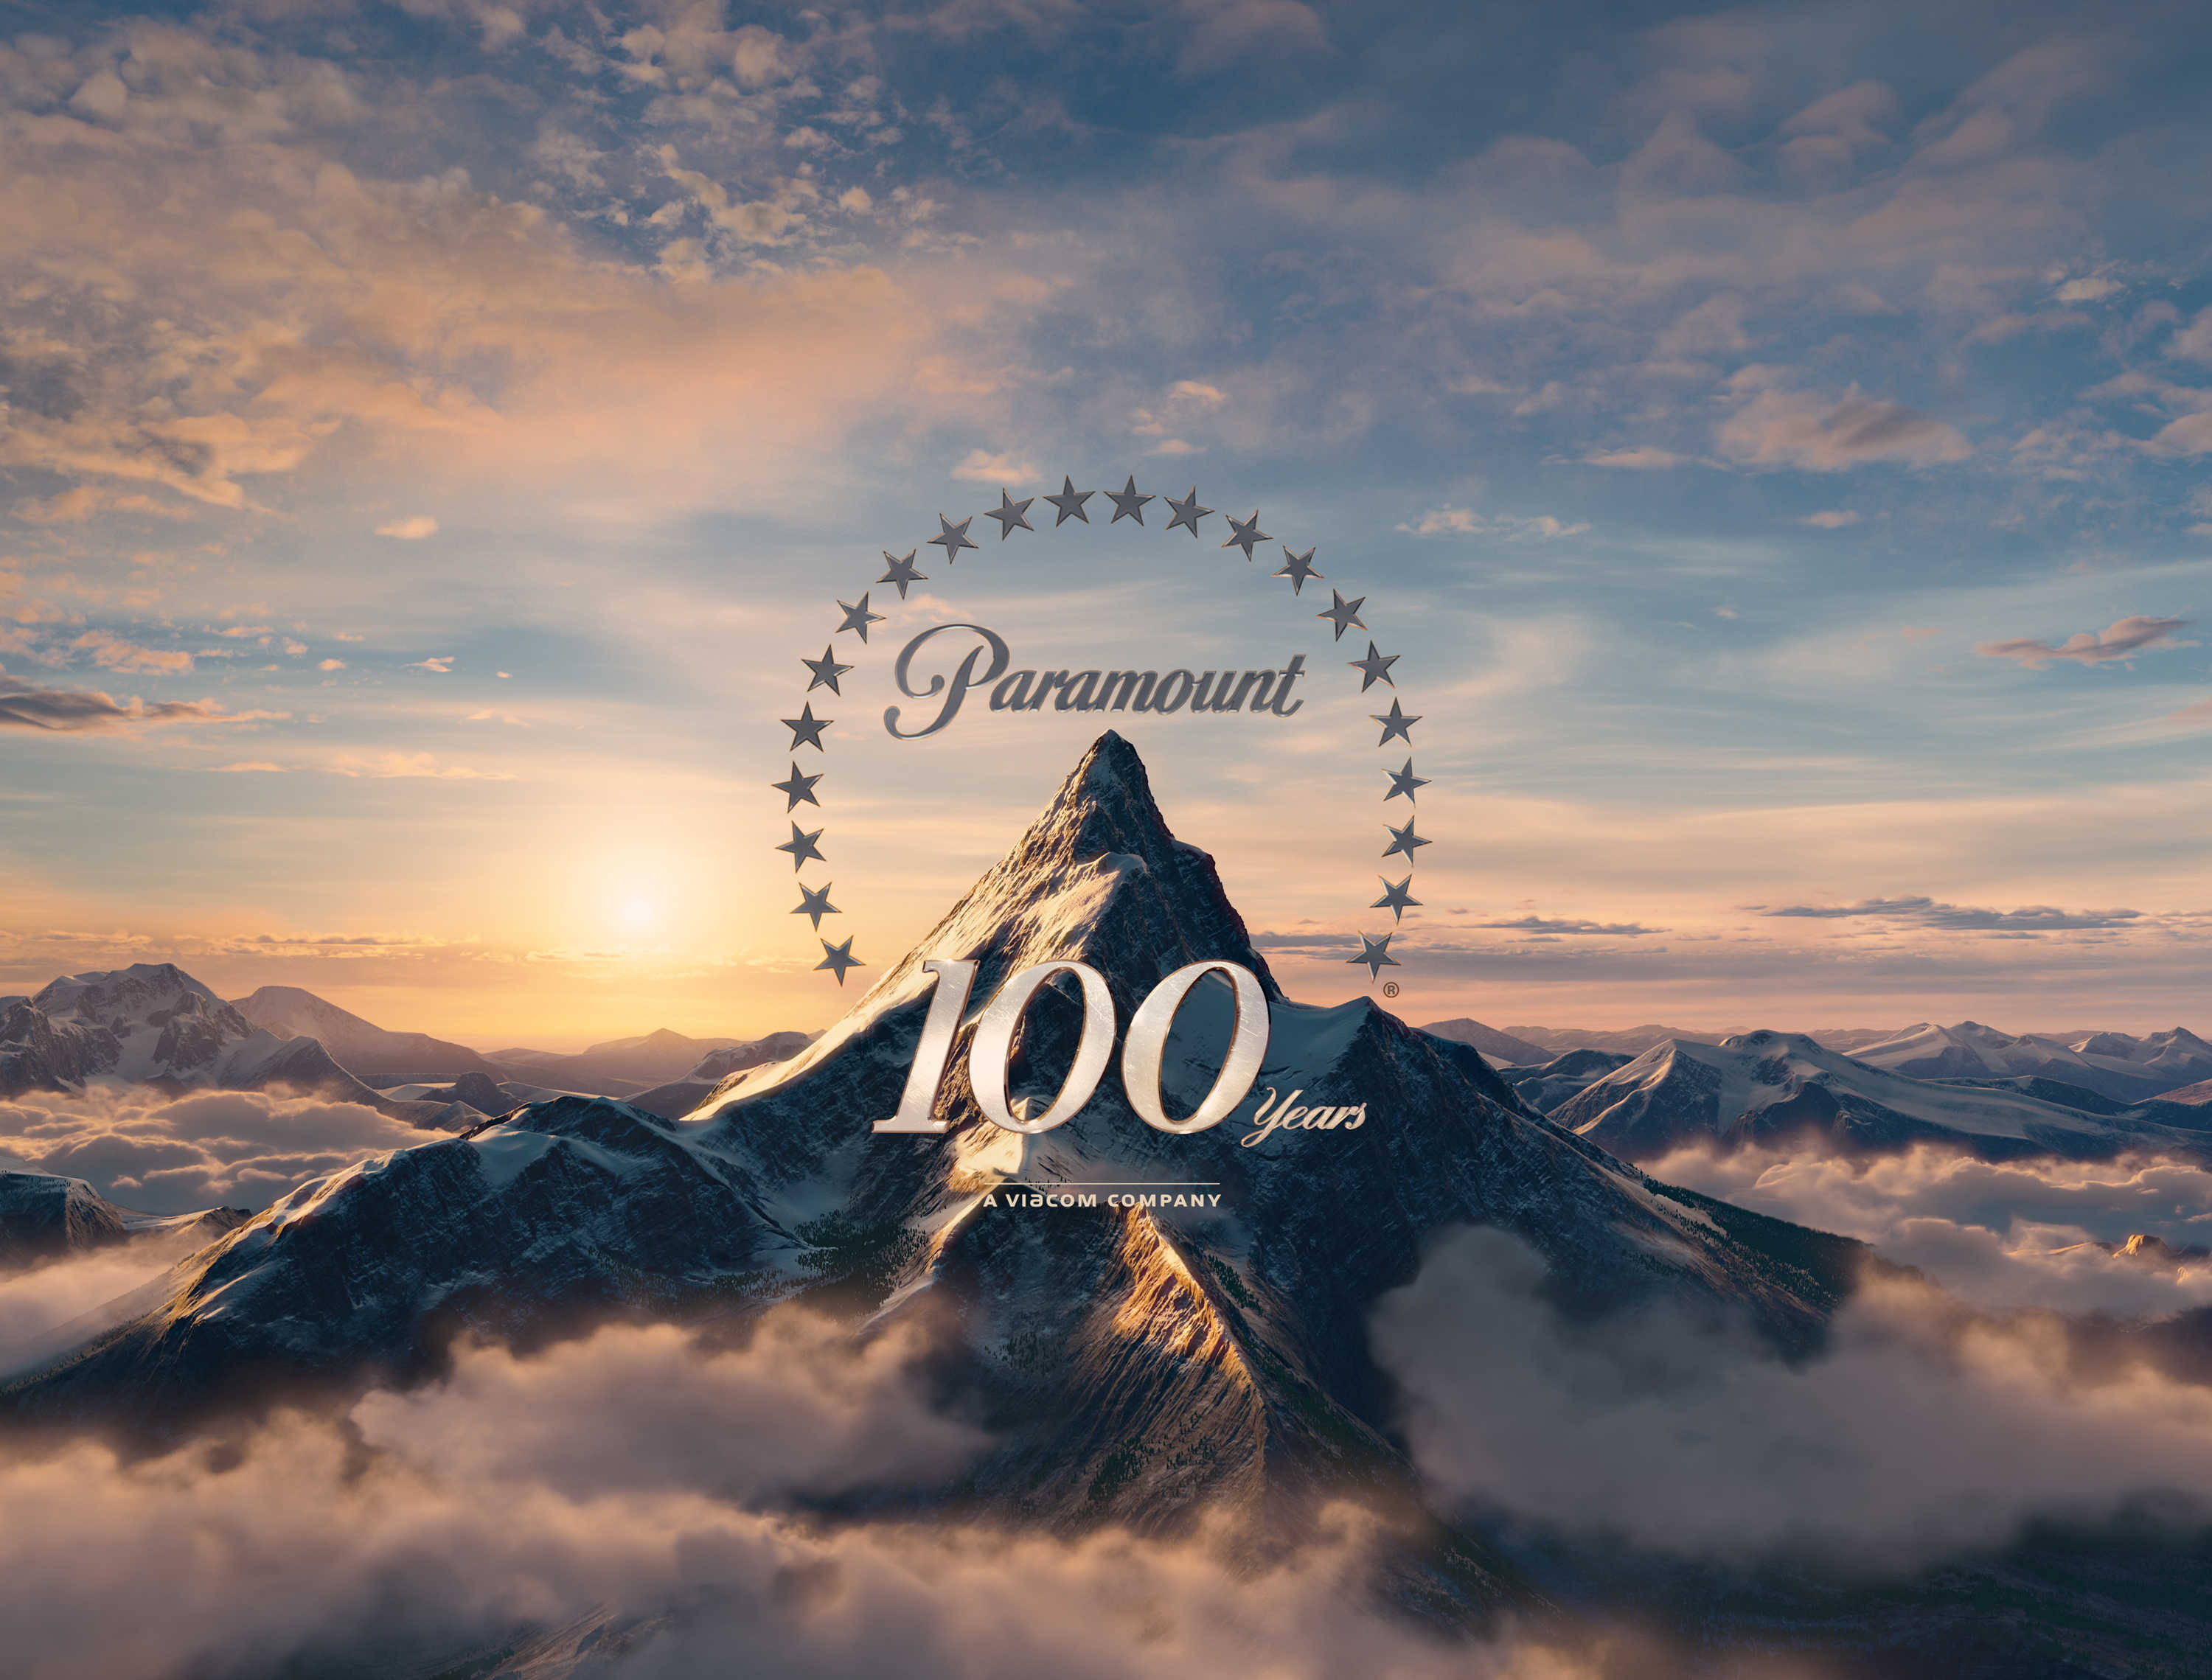 Home Design Companies Los Angeles Paramount Pictures Celebrates 100 Years With A New Logo